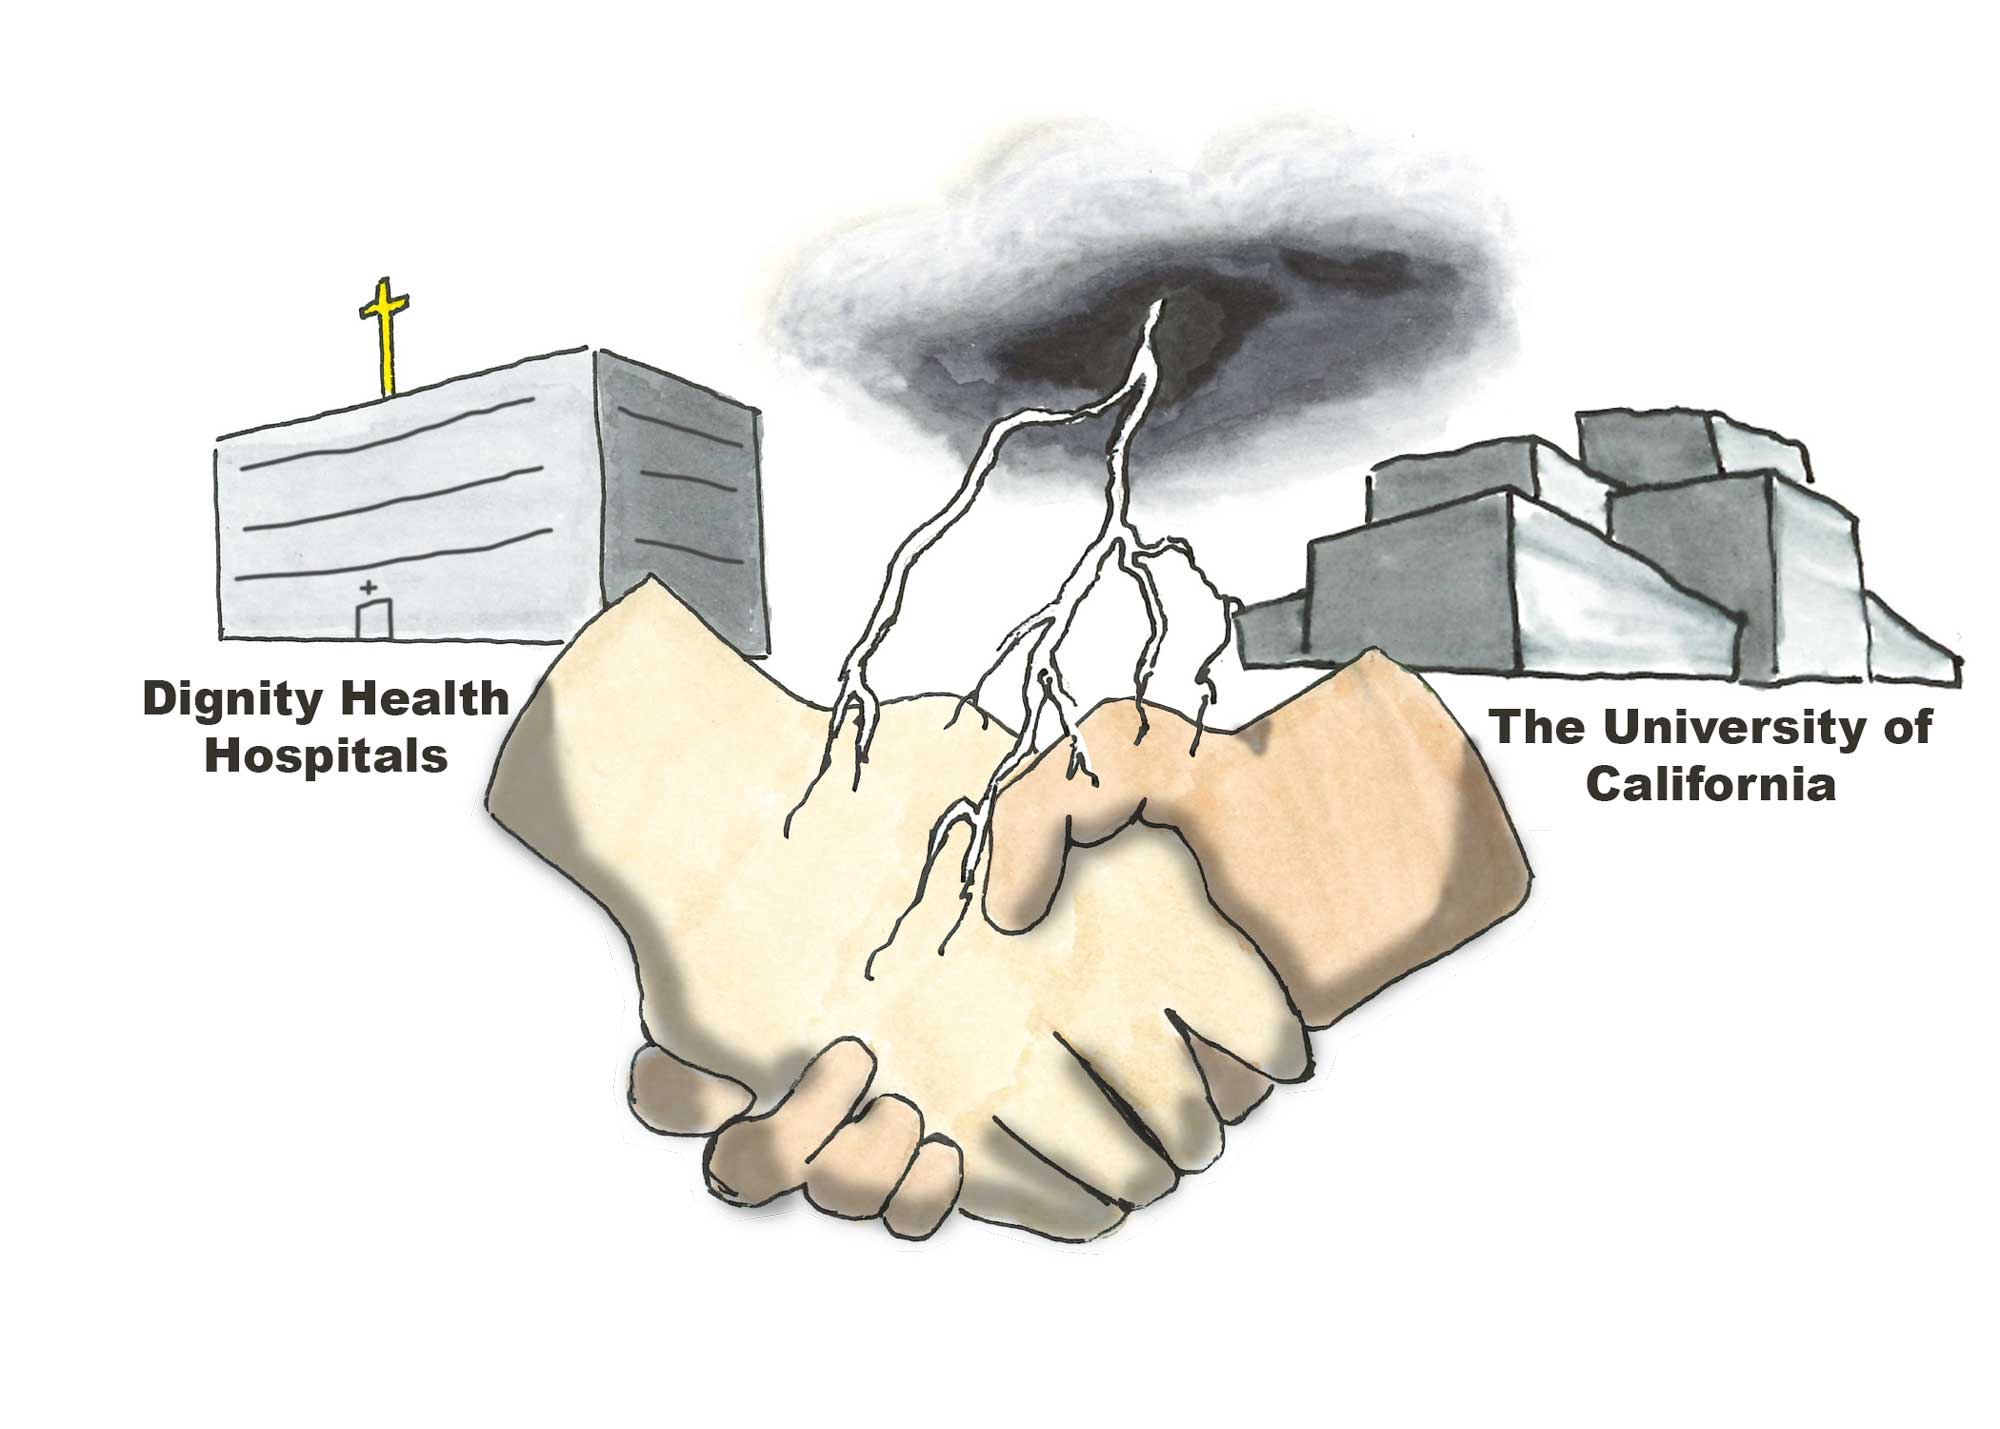 Religious Health Care has No Place at UC